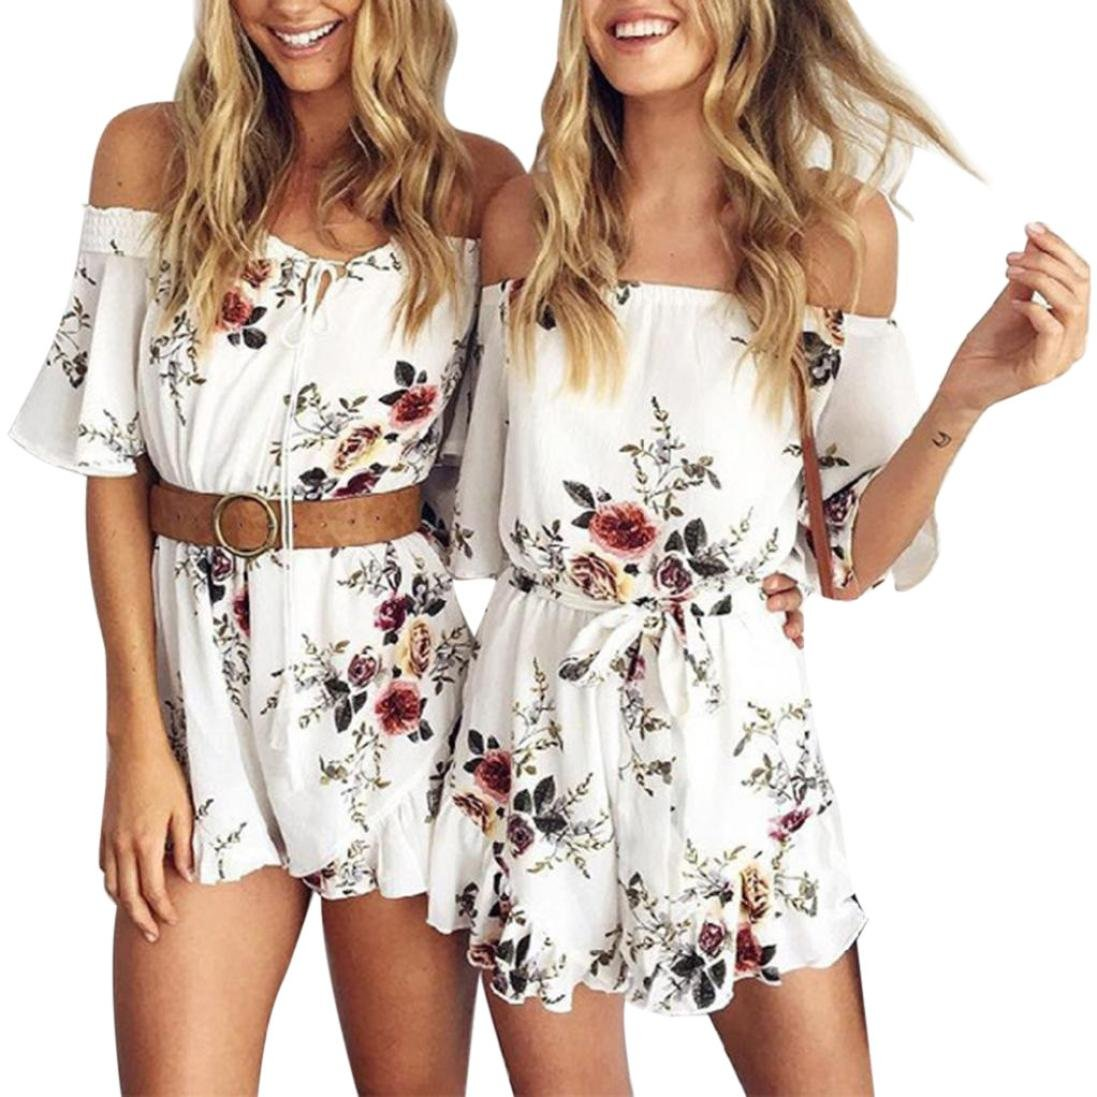 ebe2f792aff Amazon.com  Women Floral Print Short Beach Sexy Off Shoulder Jumpsuit  Rompers Shorts Playsuit  Clothing